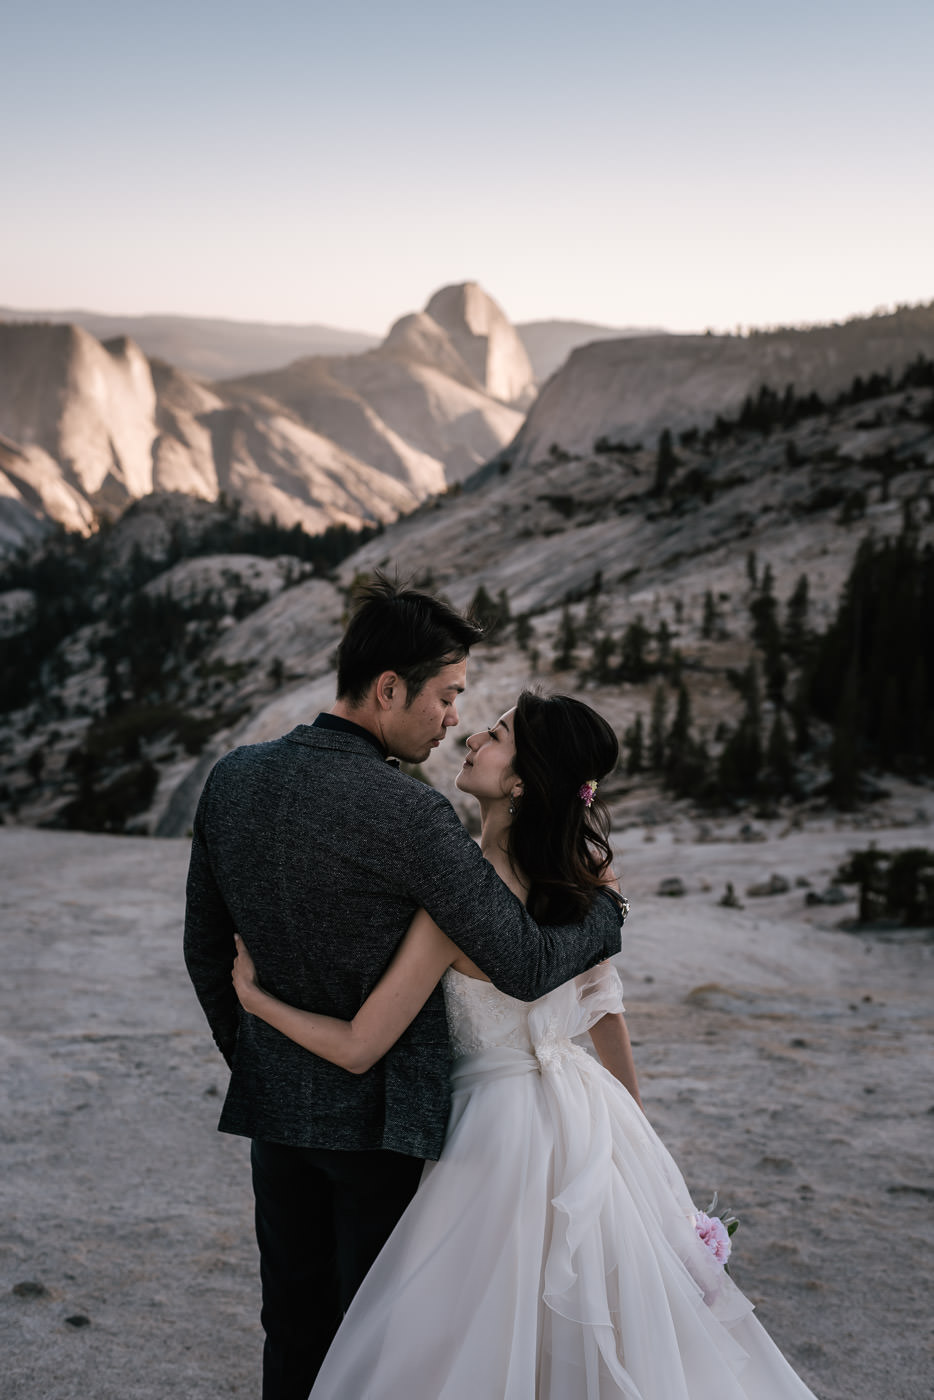 olmsted-point-elopement-yosemite-3.jpg